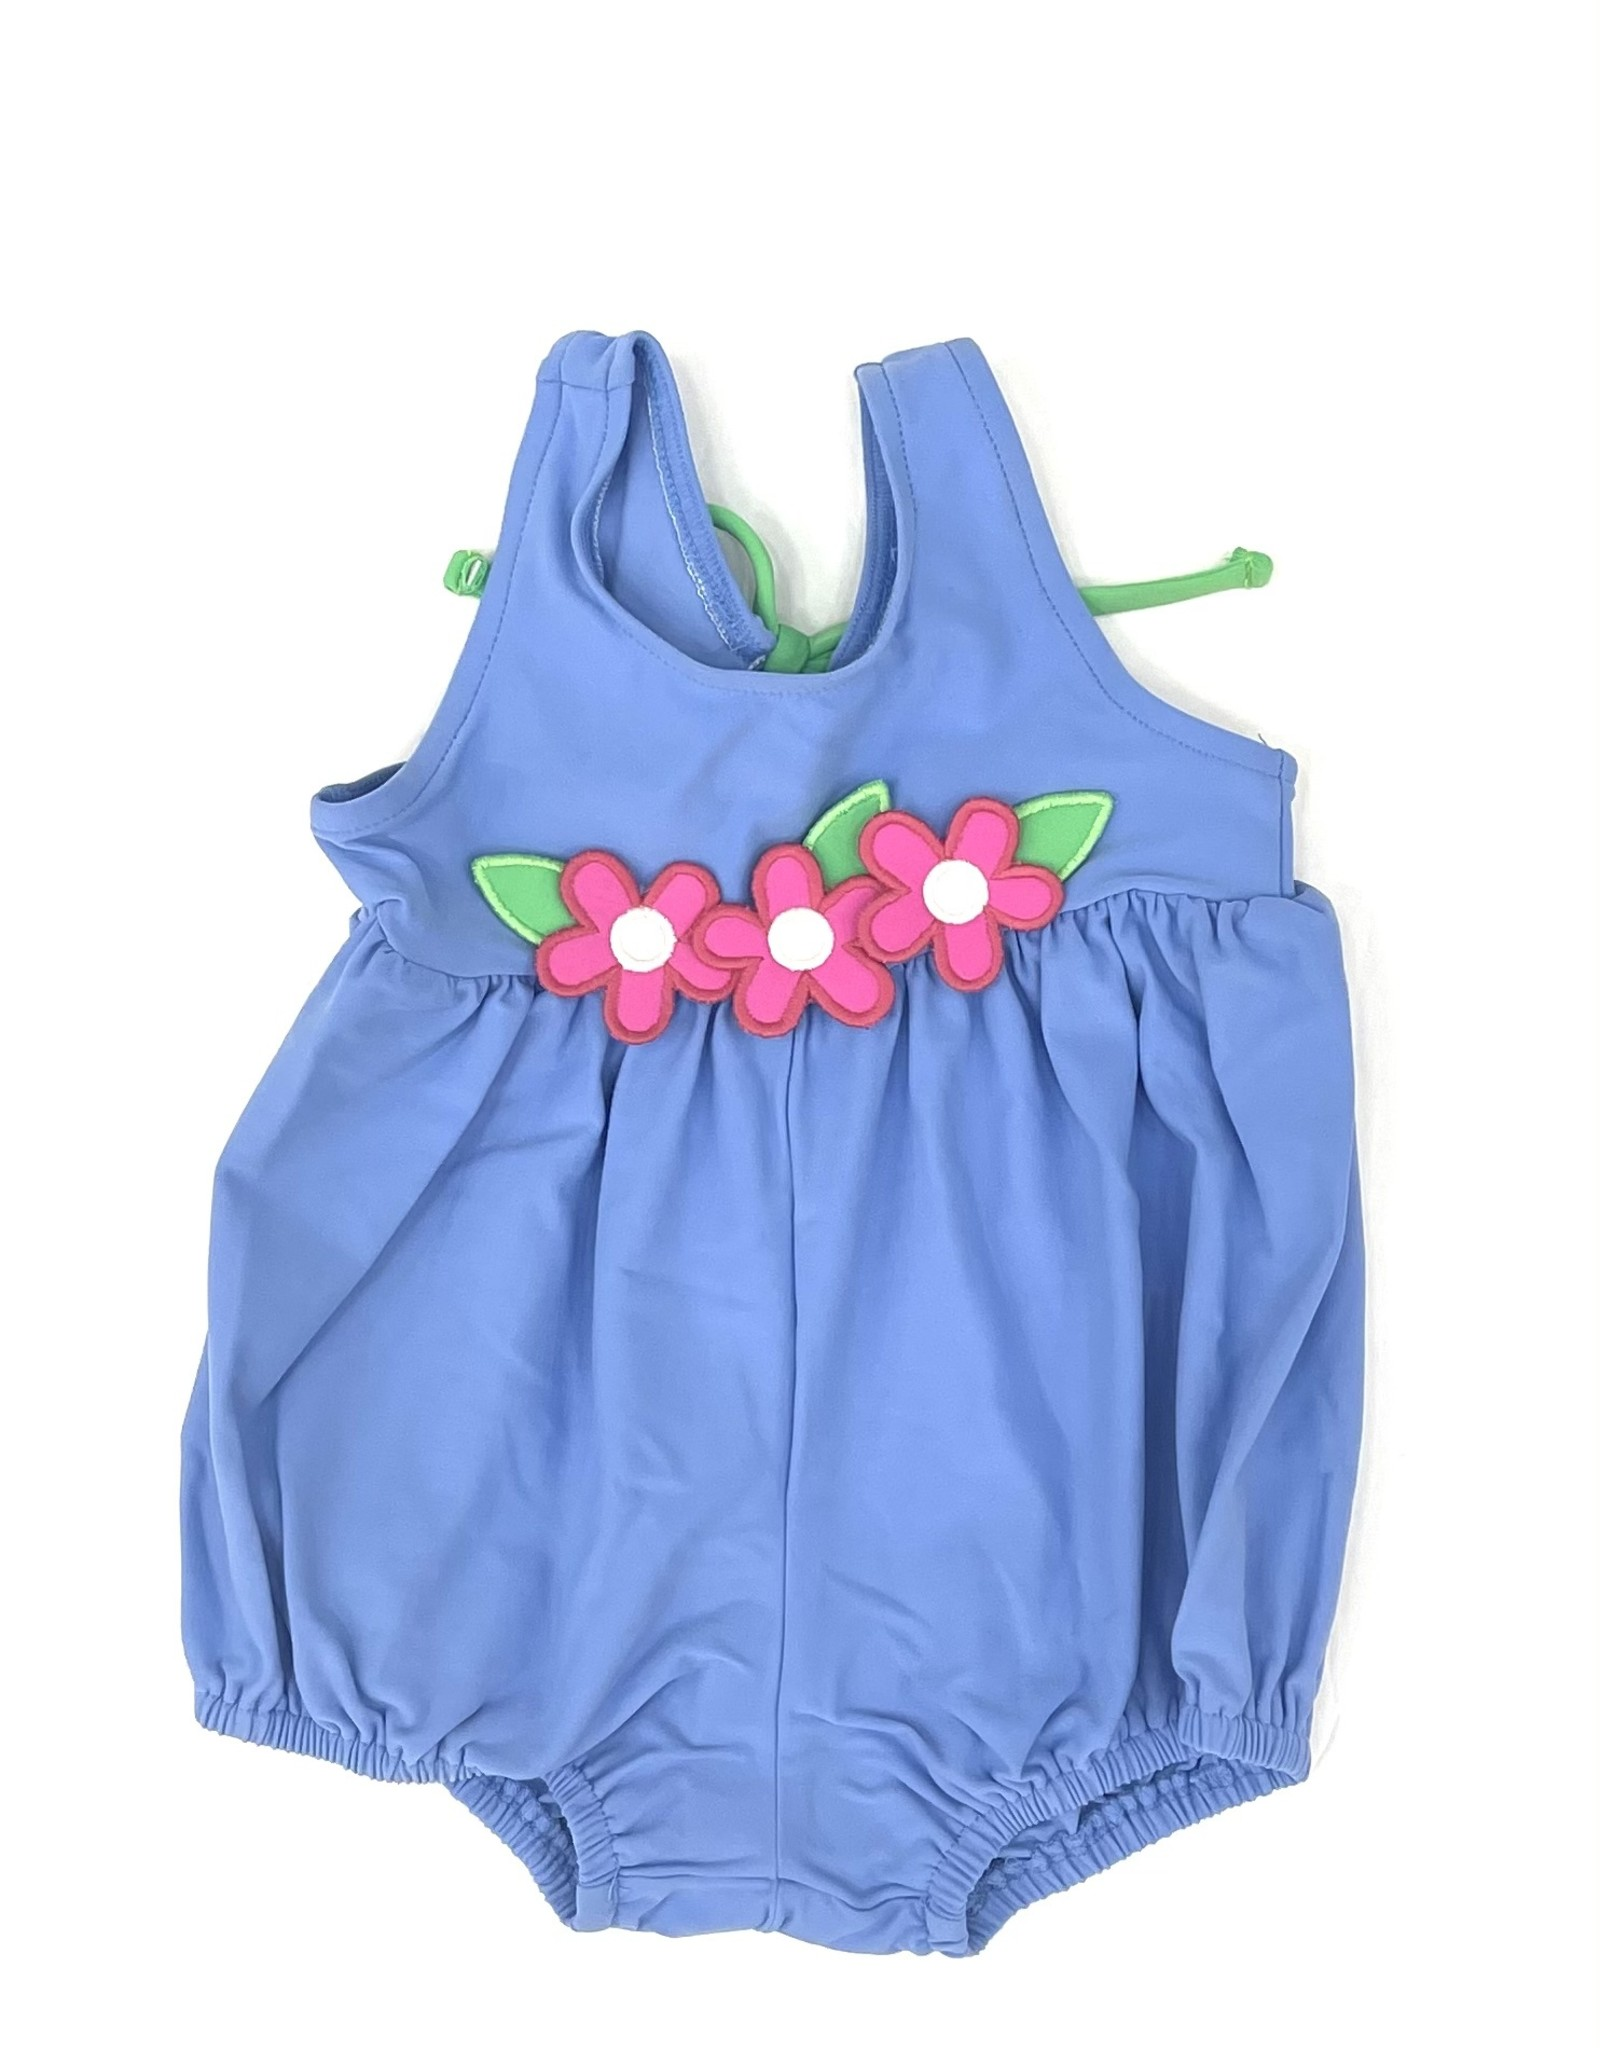 Florence Eiseman Blue Bubble Swimsuit With Flowers